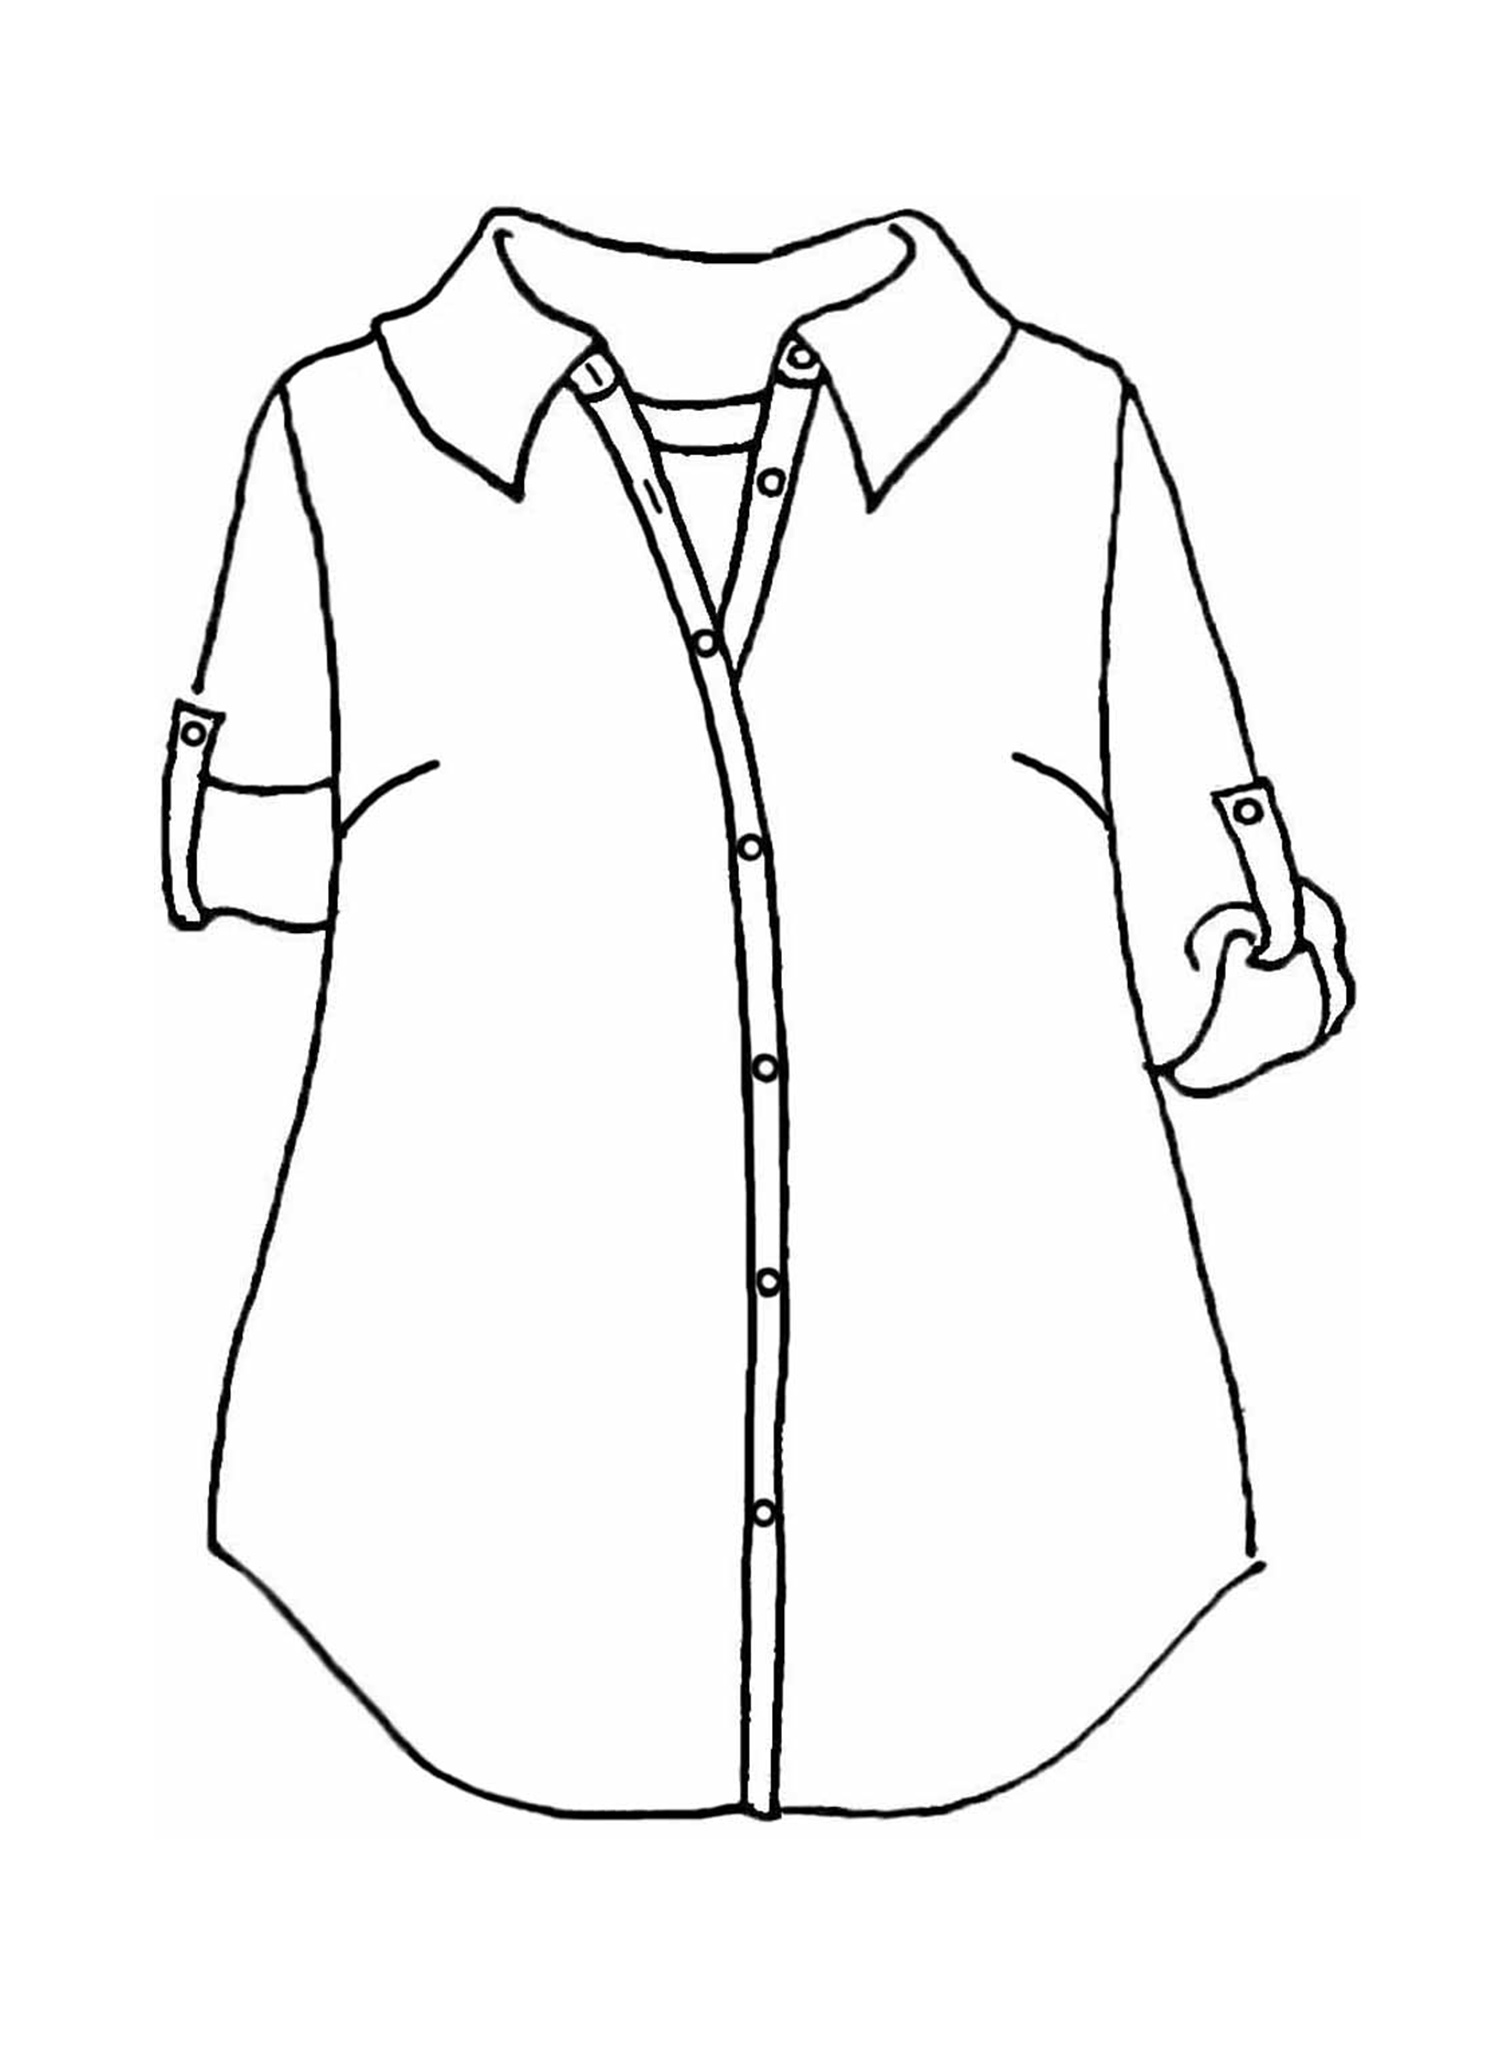 Workshirt sketch image